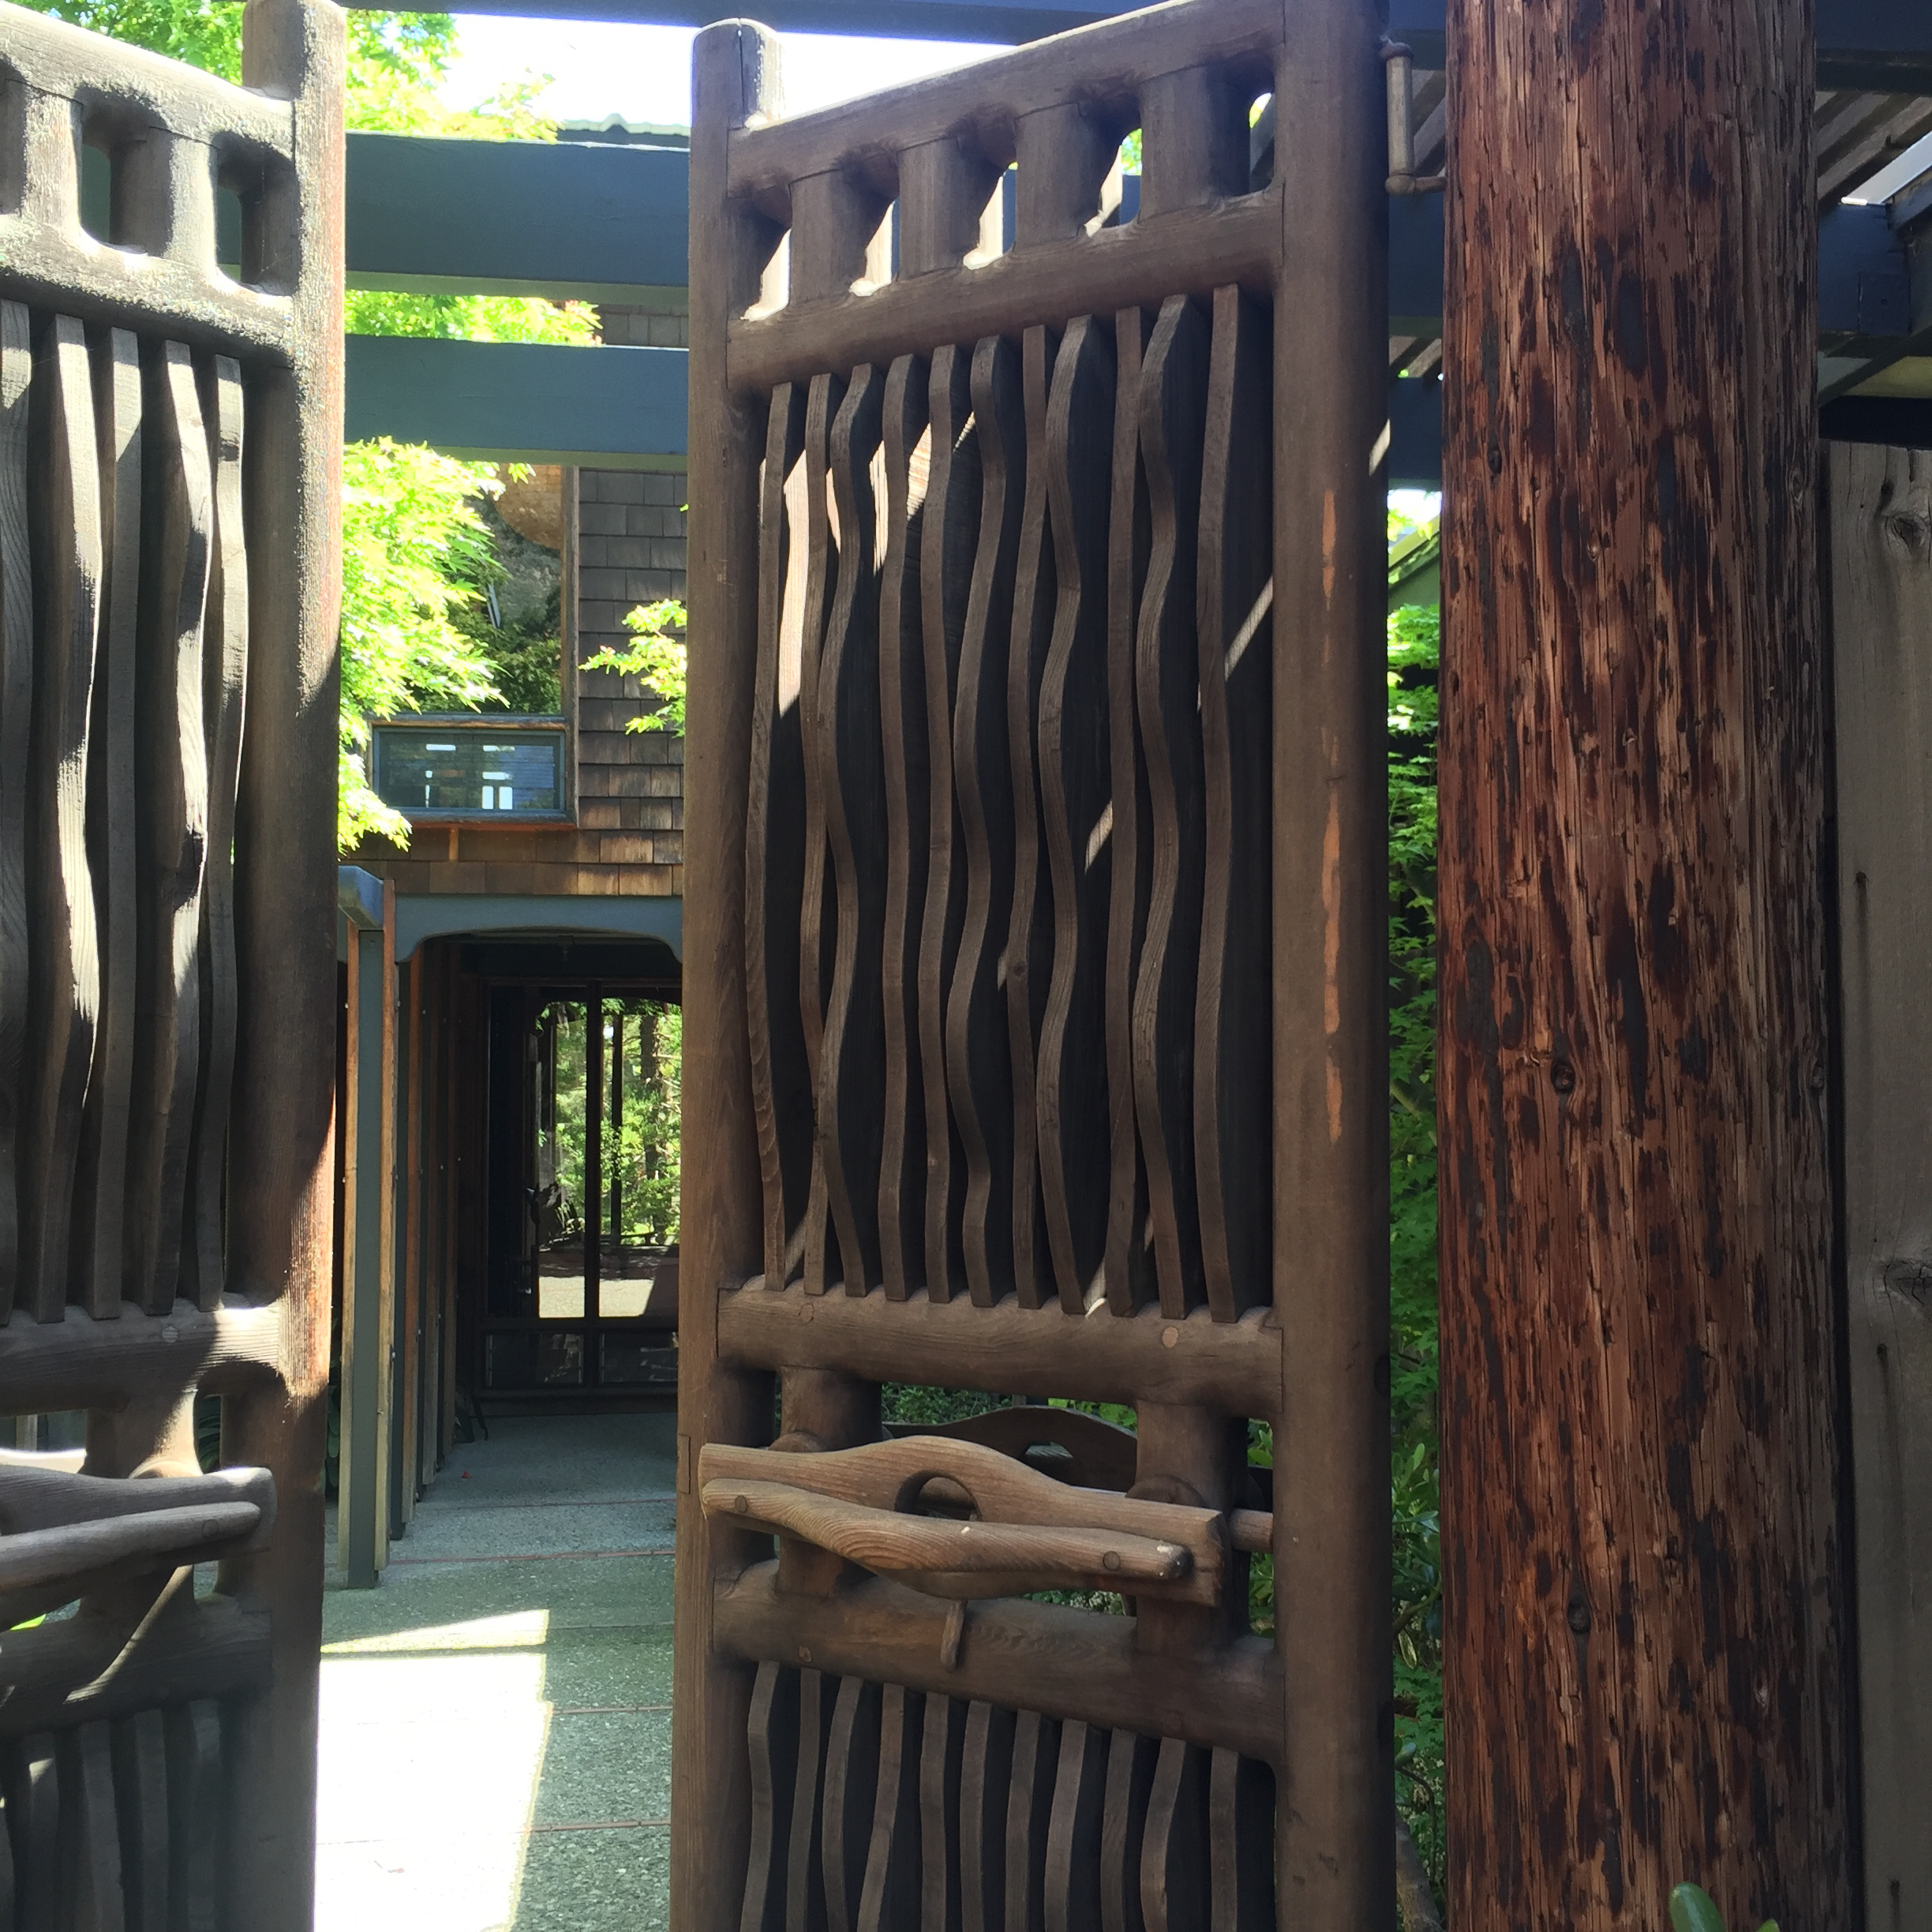 one of several artful entrances that Maloof crafted through the gardens and his house